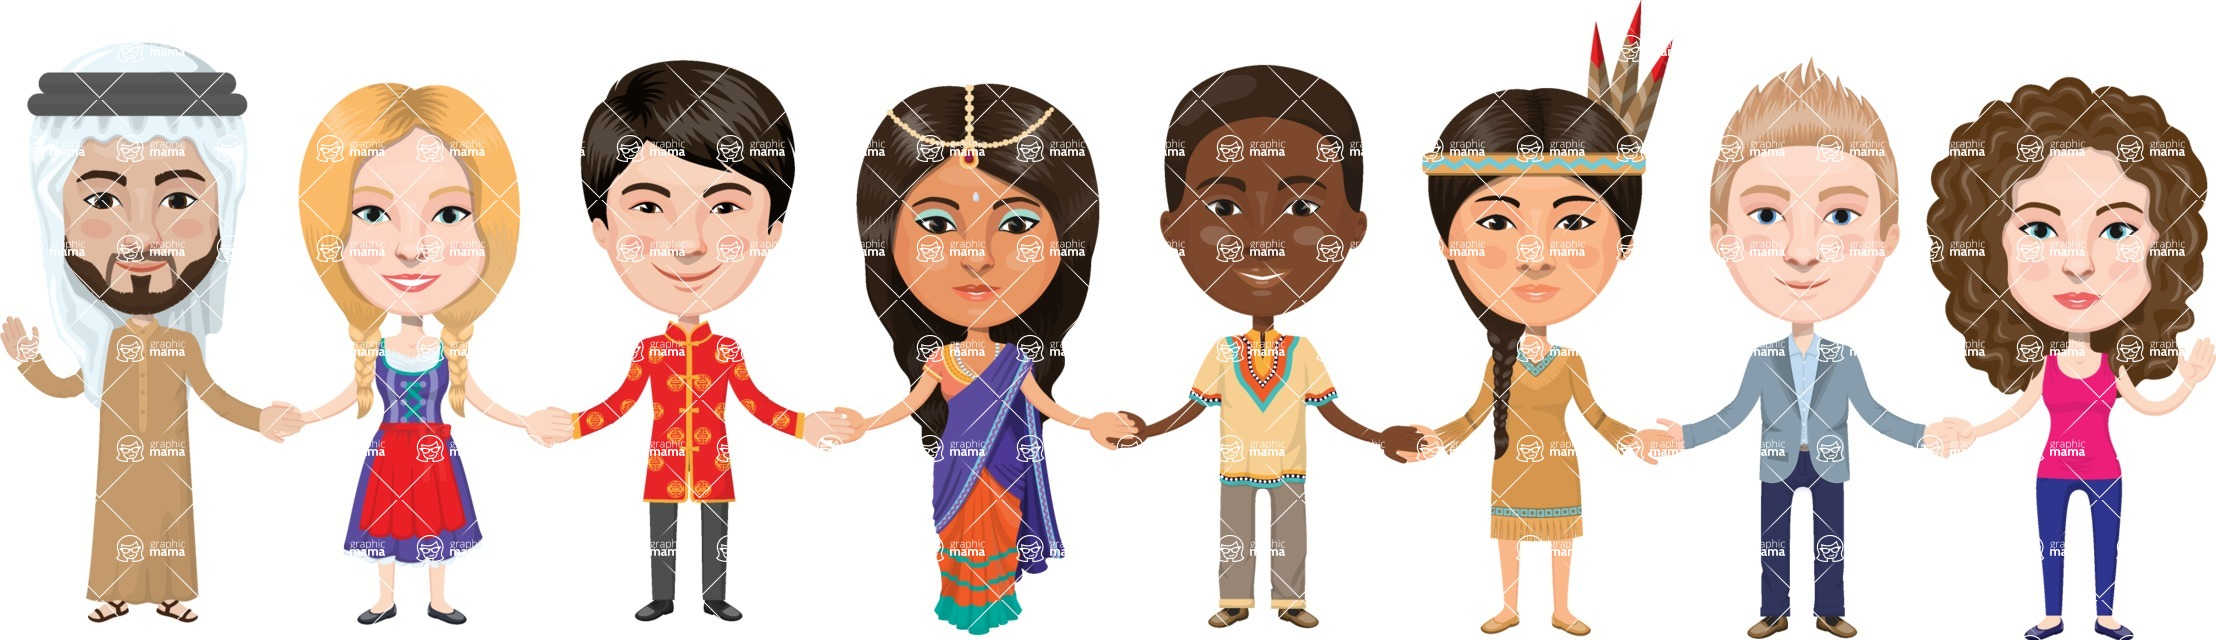 Students of different nationality holding hands clipart graphic 48. People from around the world holding hands graphic